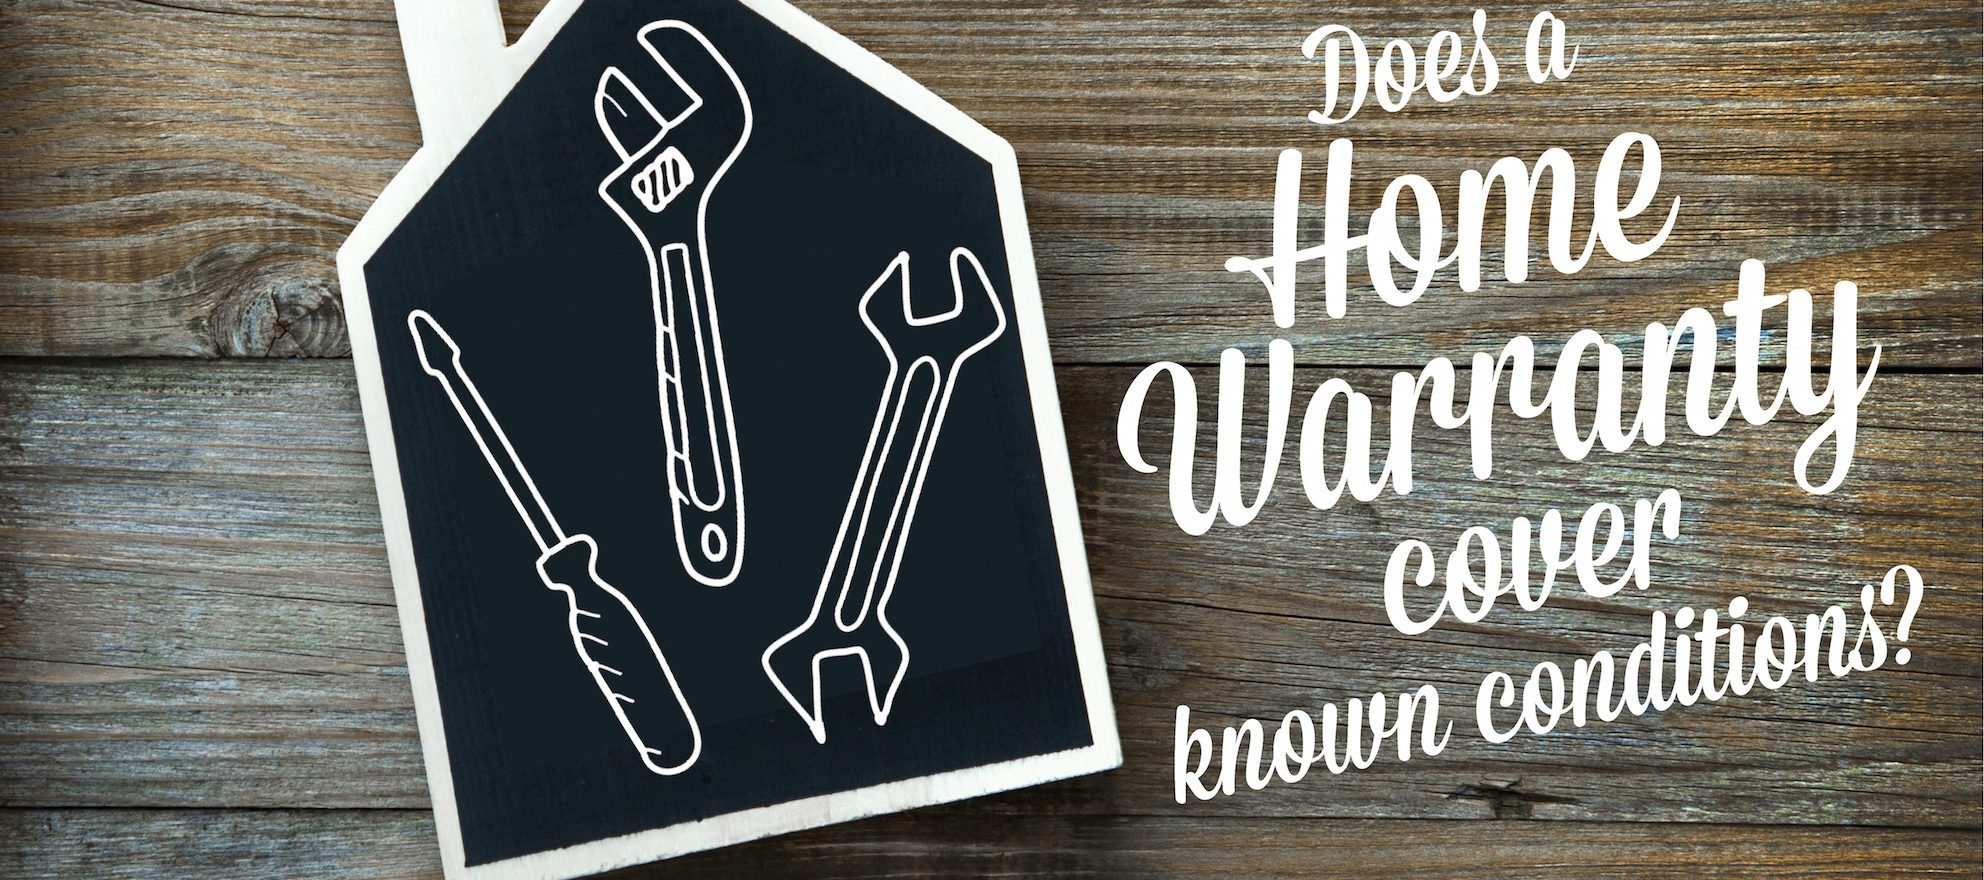 Teach homebuyers the ins and outs of home warranties